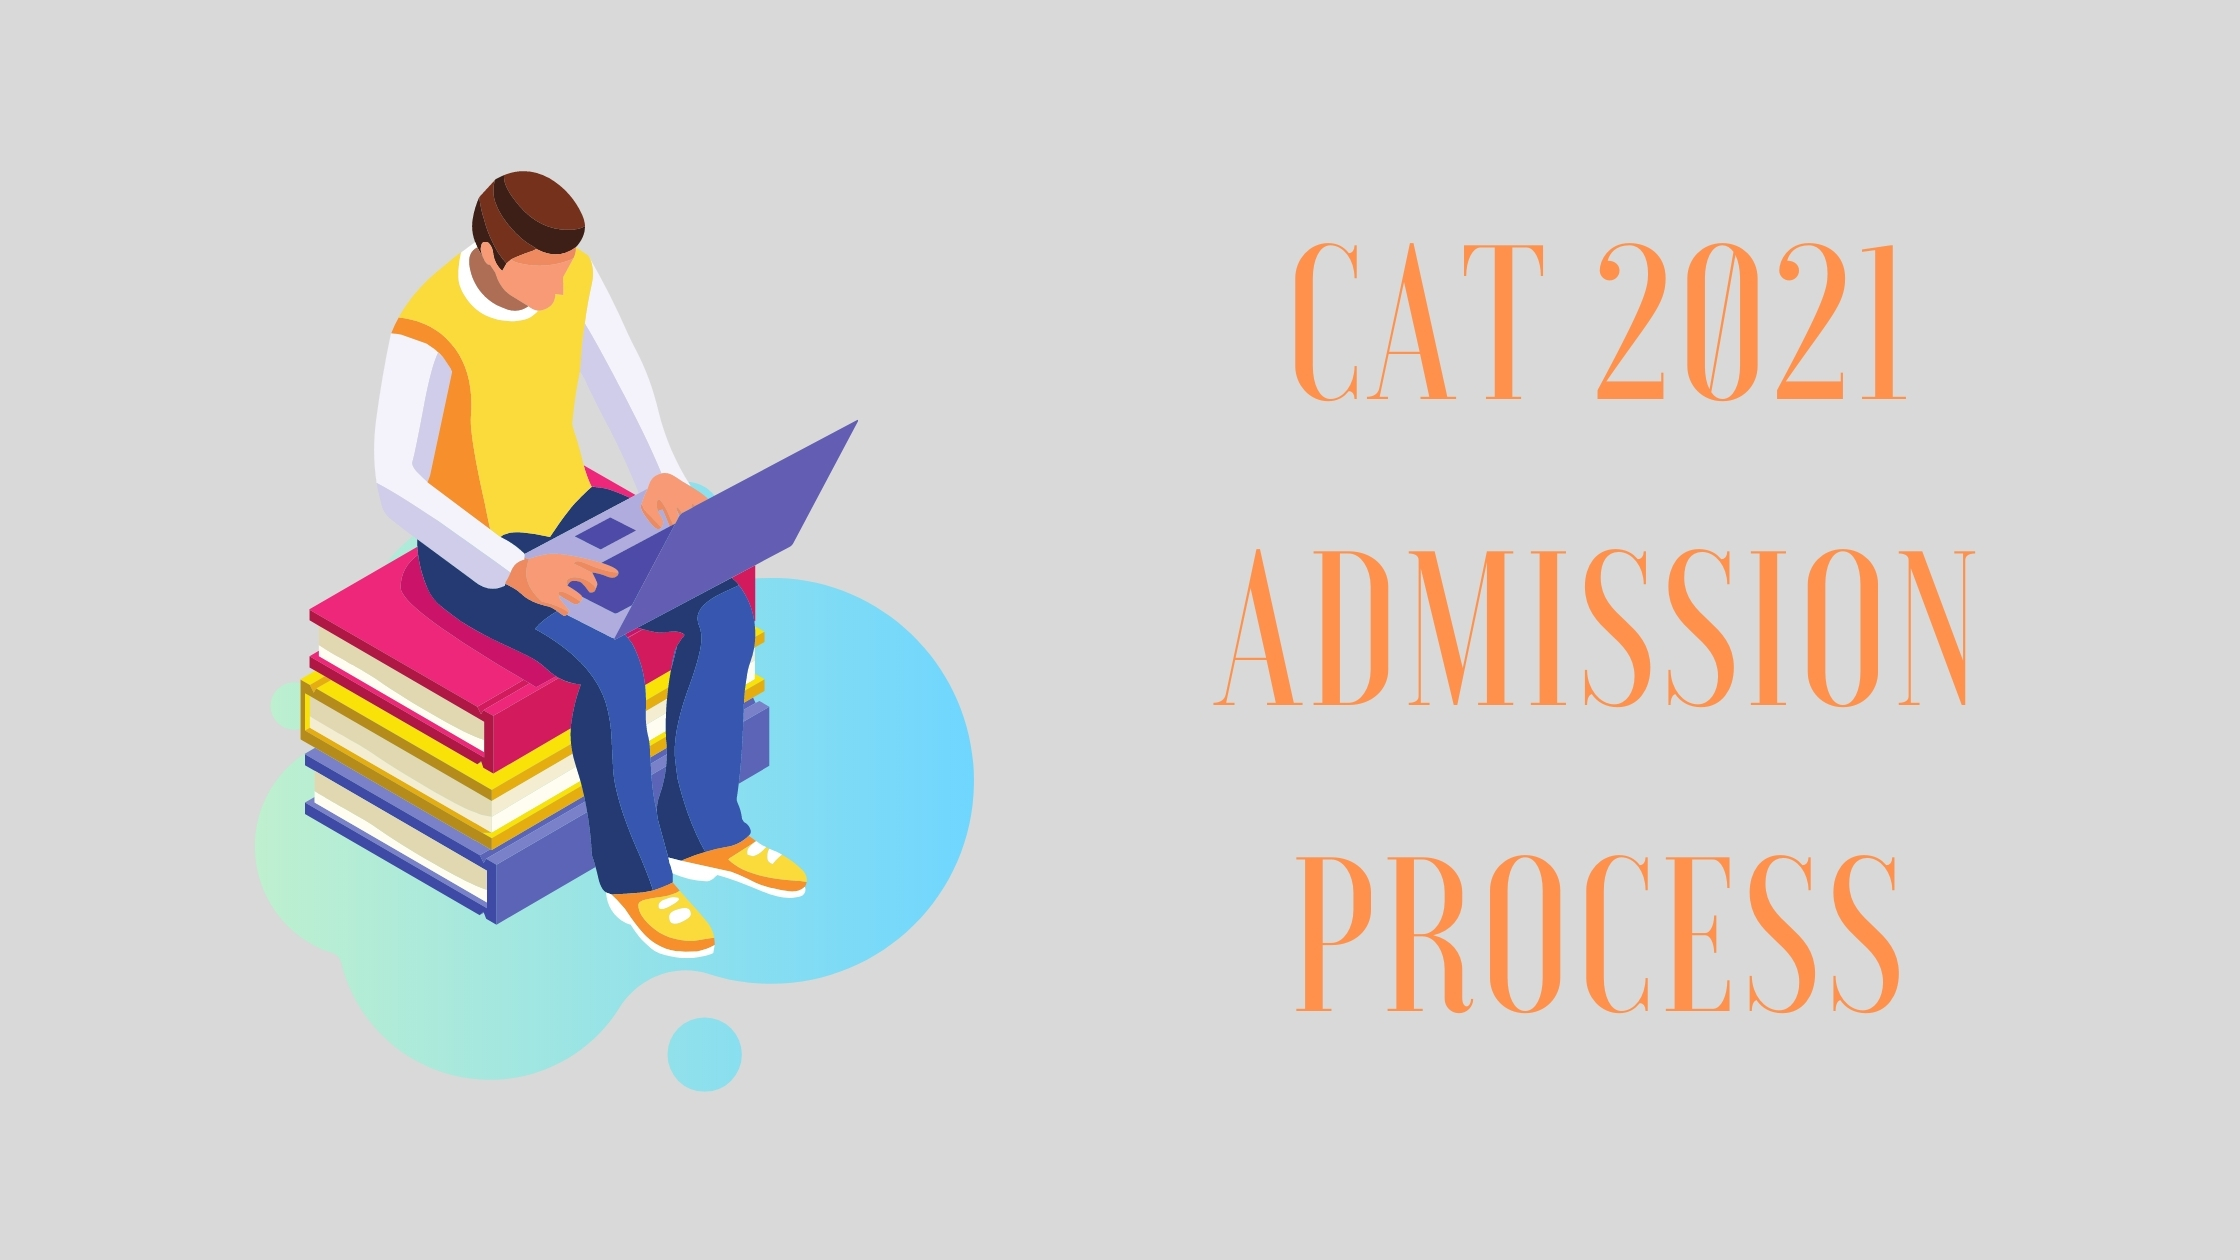 cat exam 2021 admission process, best cat coaching classes in bhopal